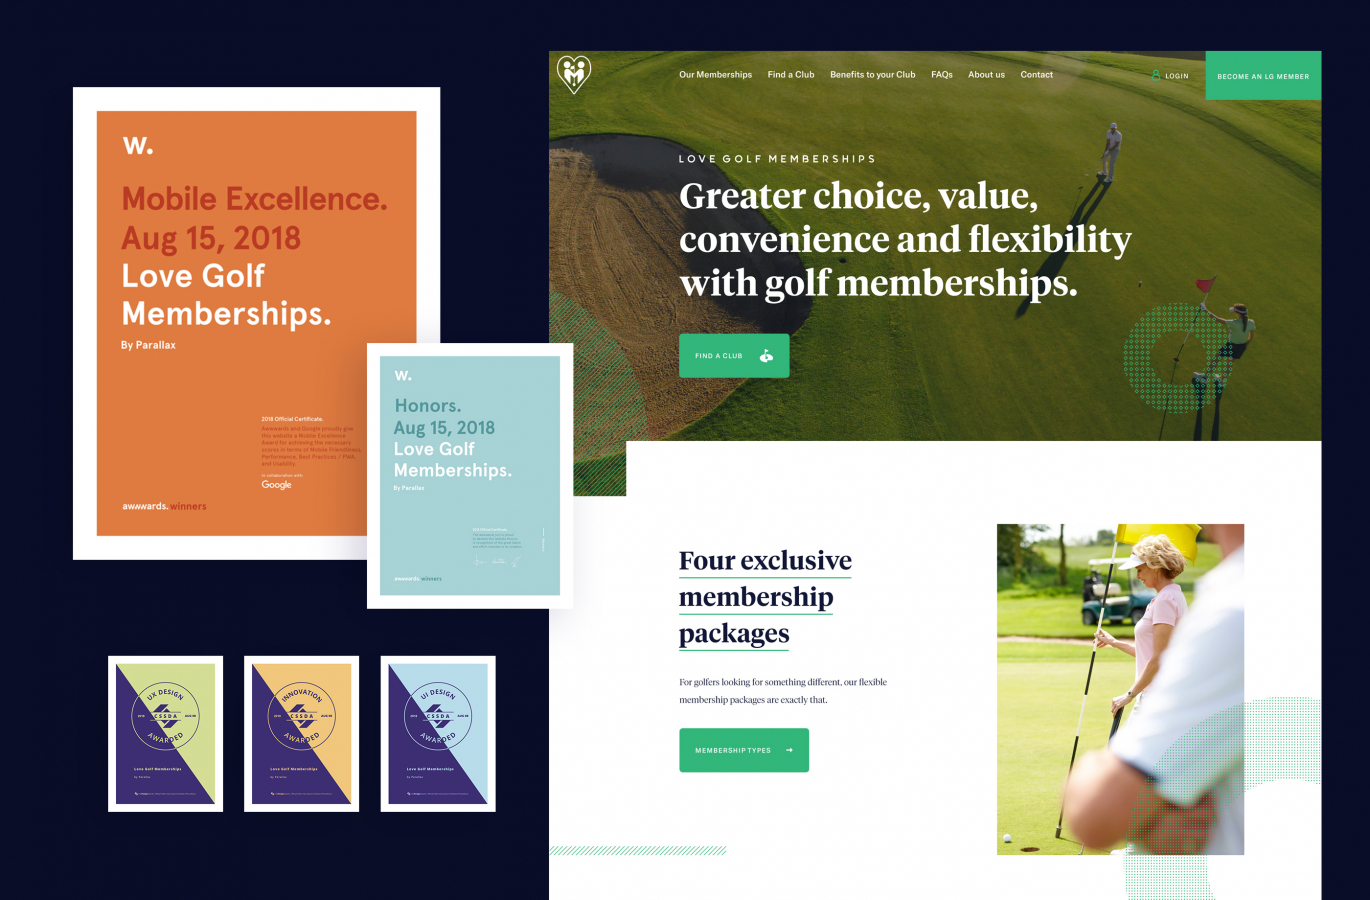 Mobile Excellence Award via Awwards for Love Golf Memberships for Parallax